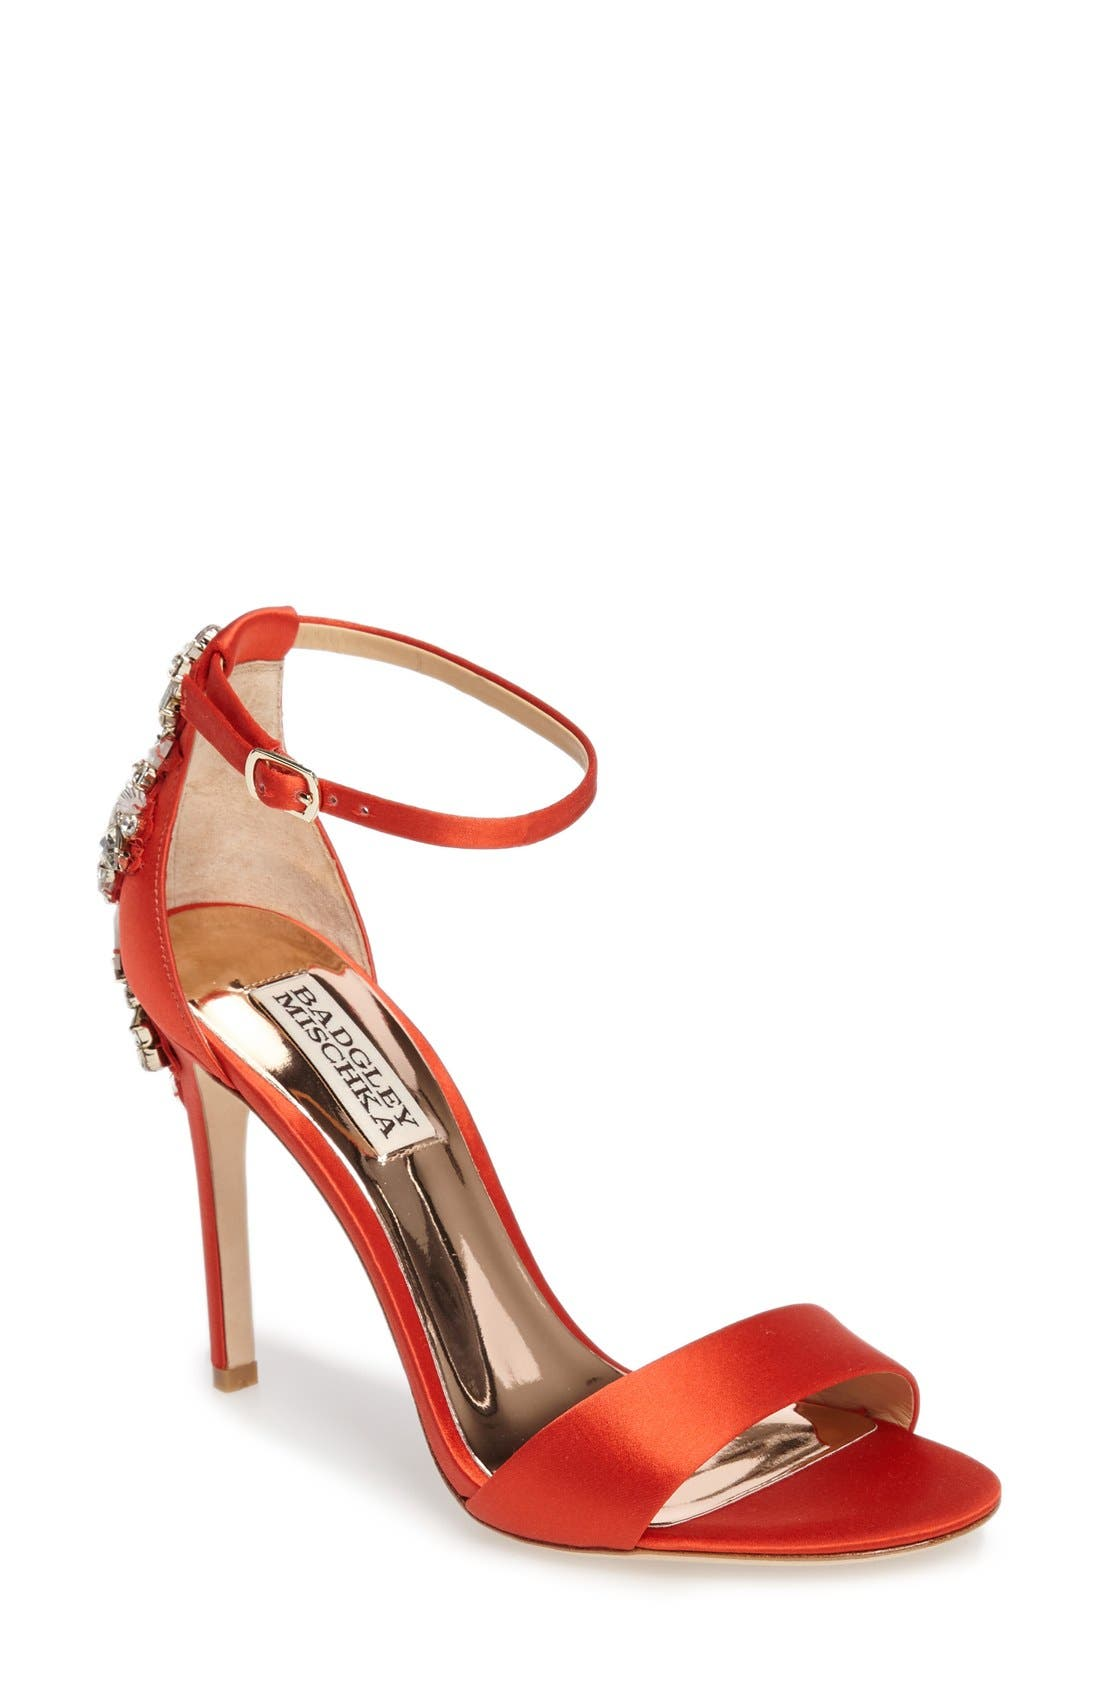 Alternate Image 1 Selected - Badgley Mischka Bartley Ankle Strap Sandal (Women)